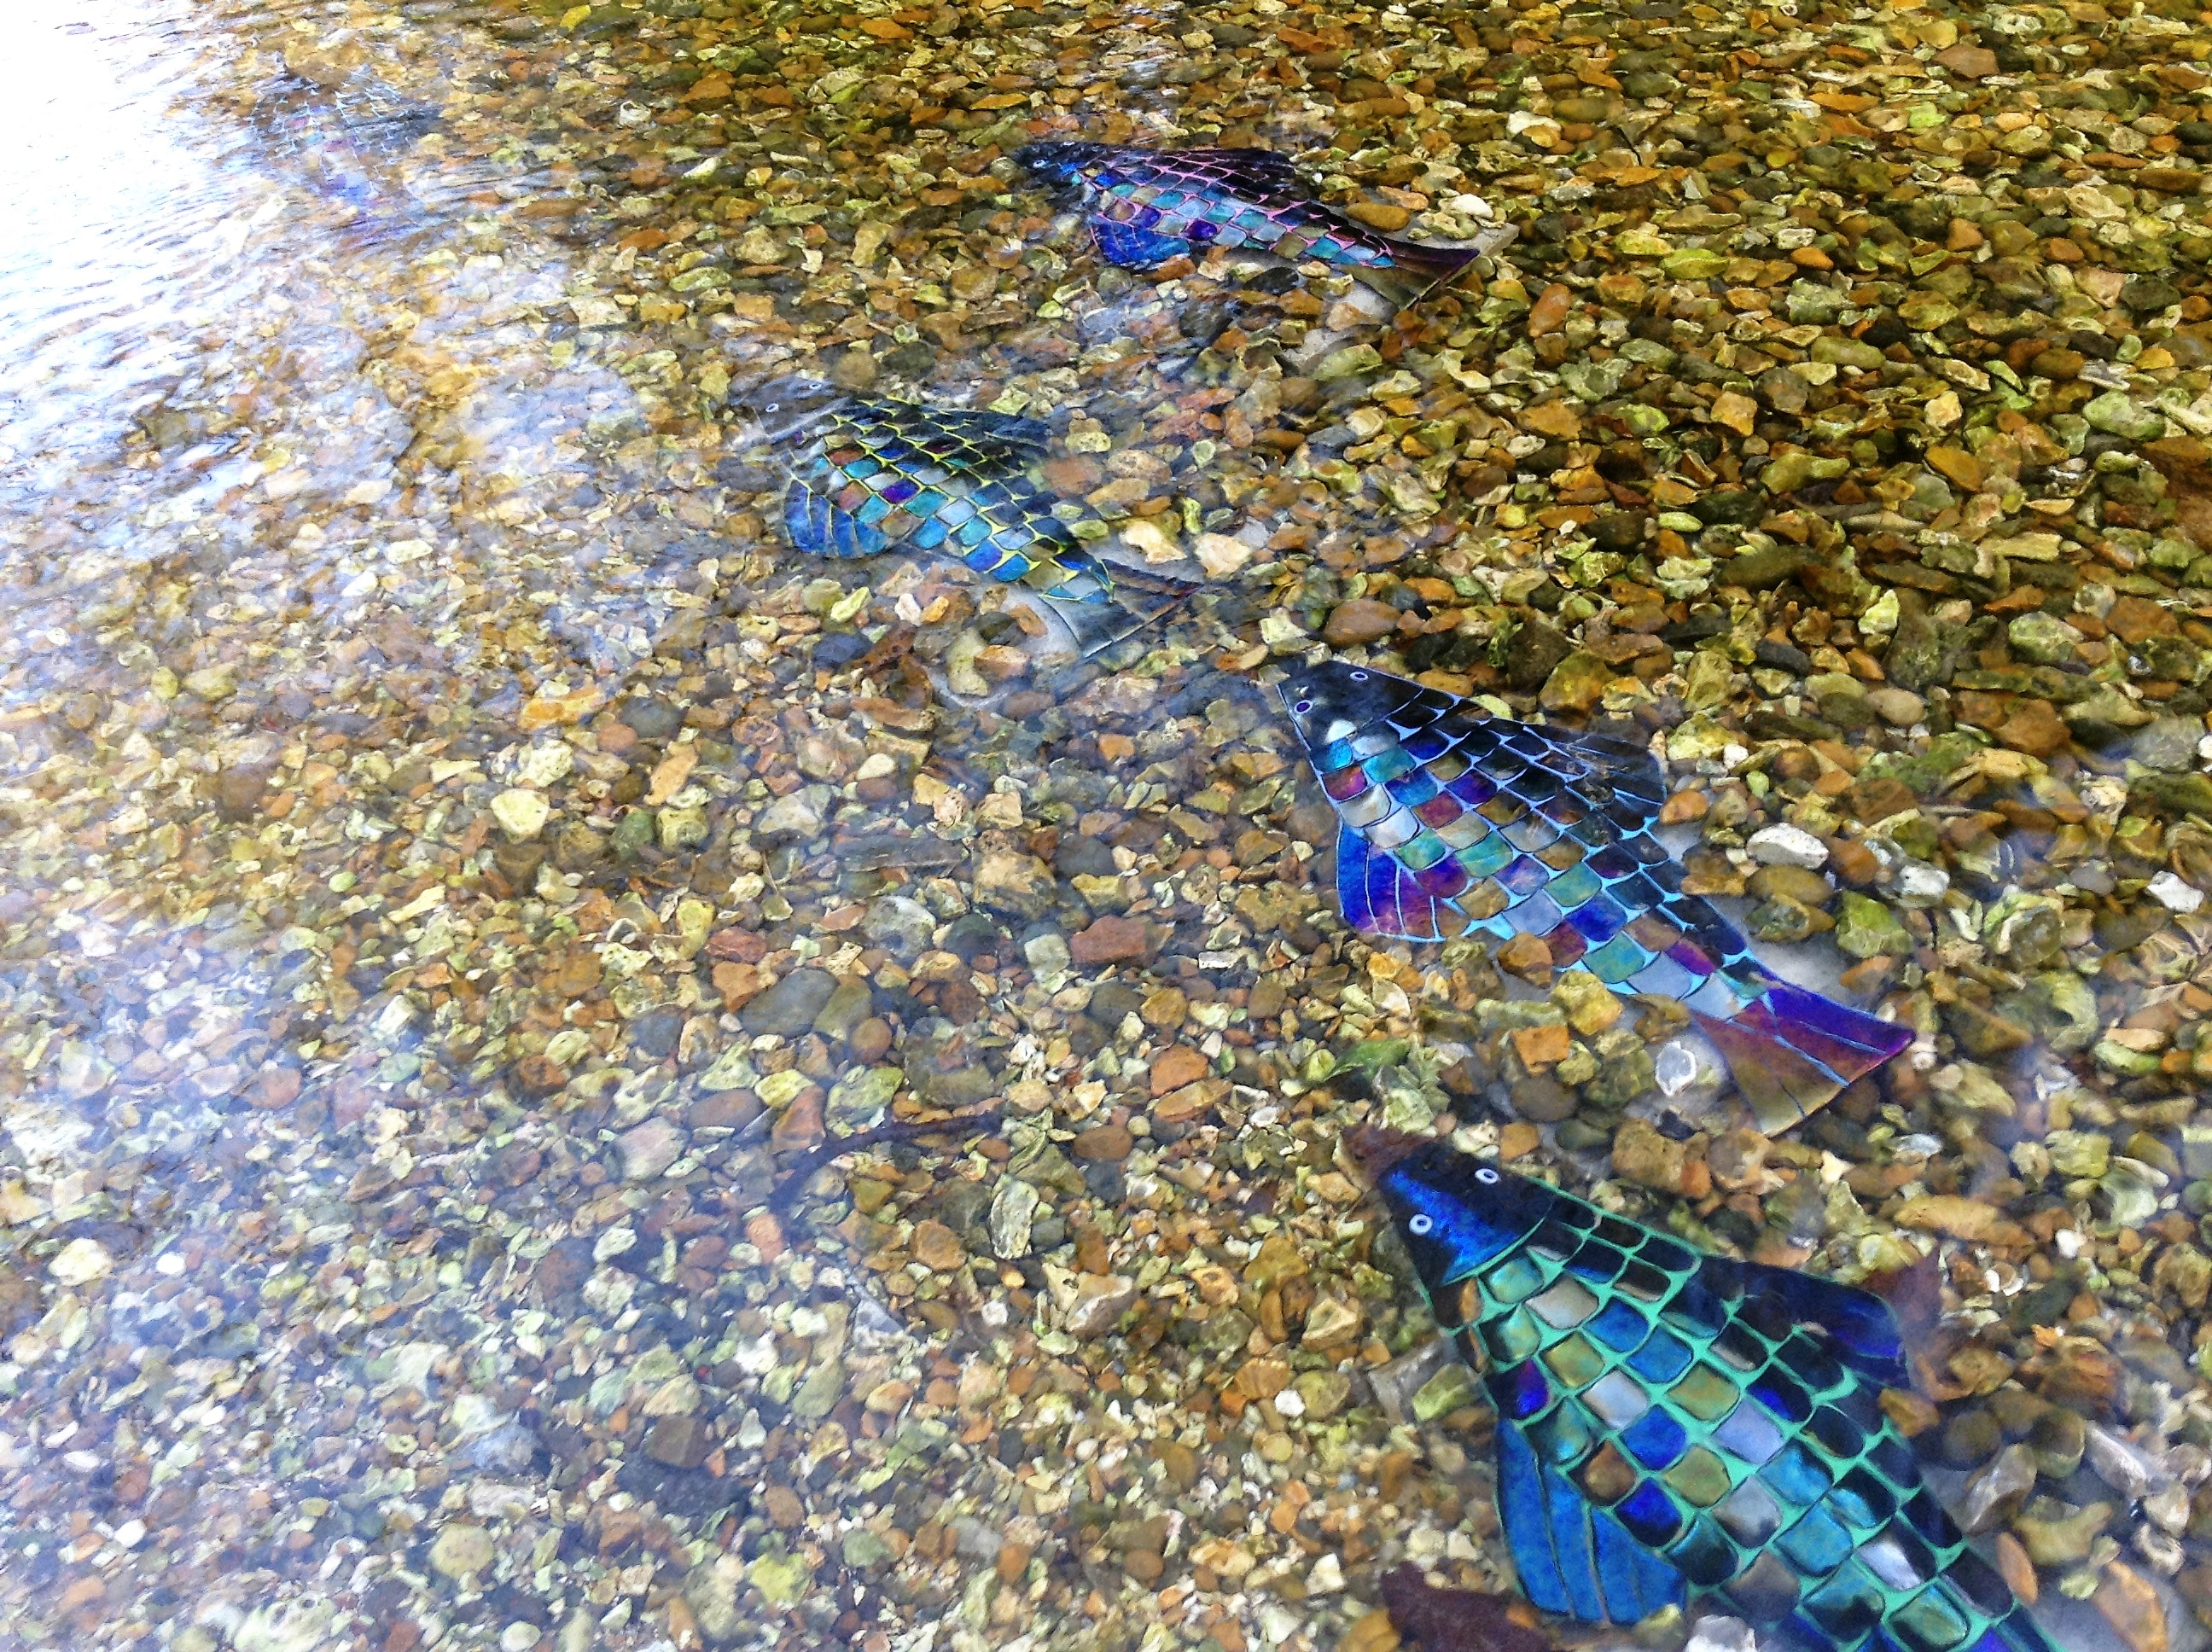 Rainbow Fish Upstream